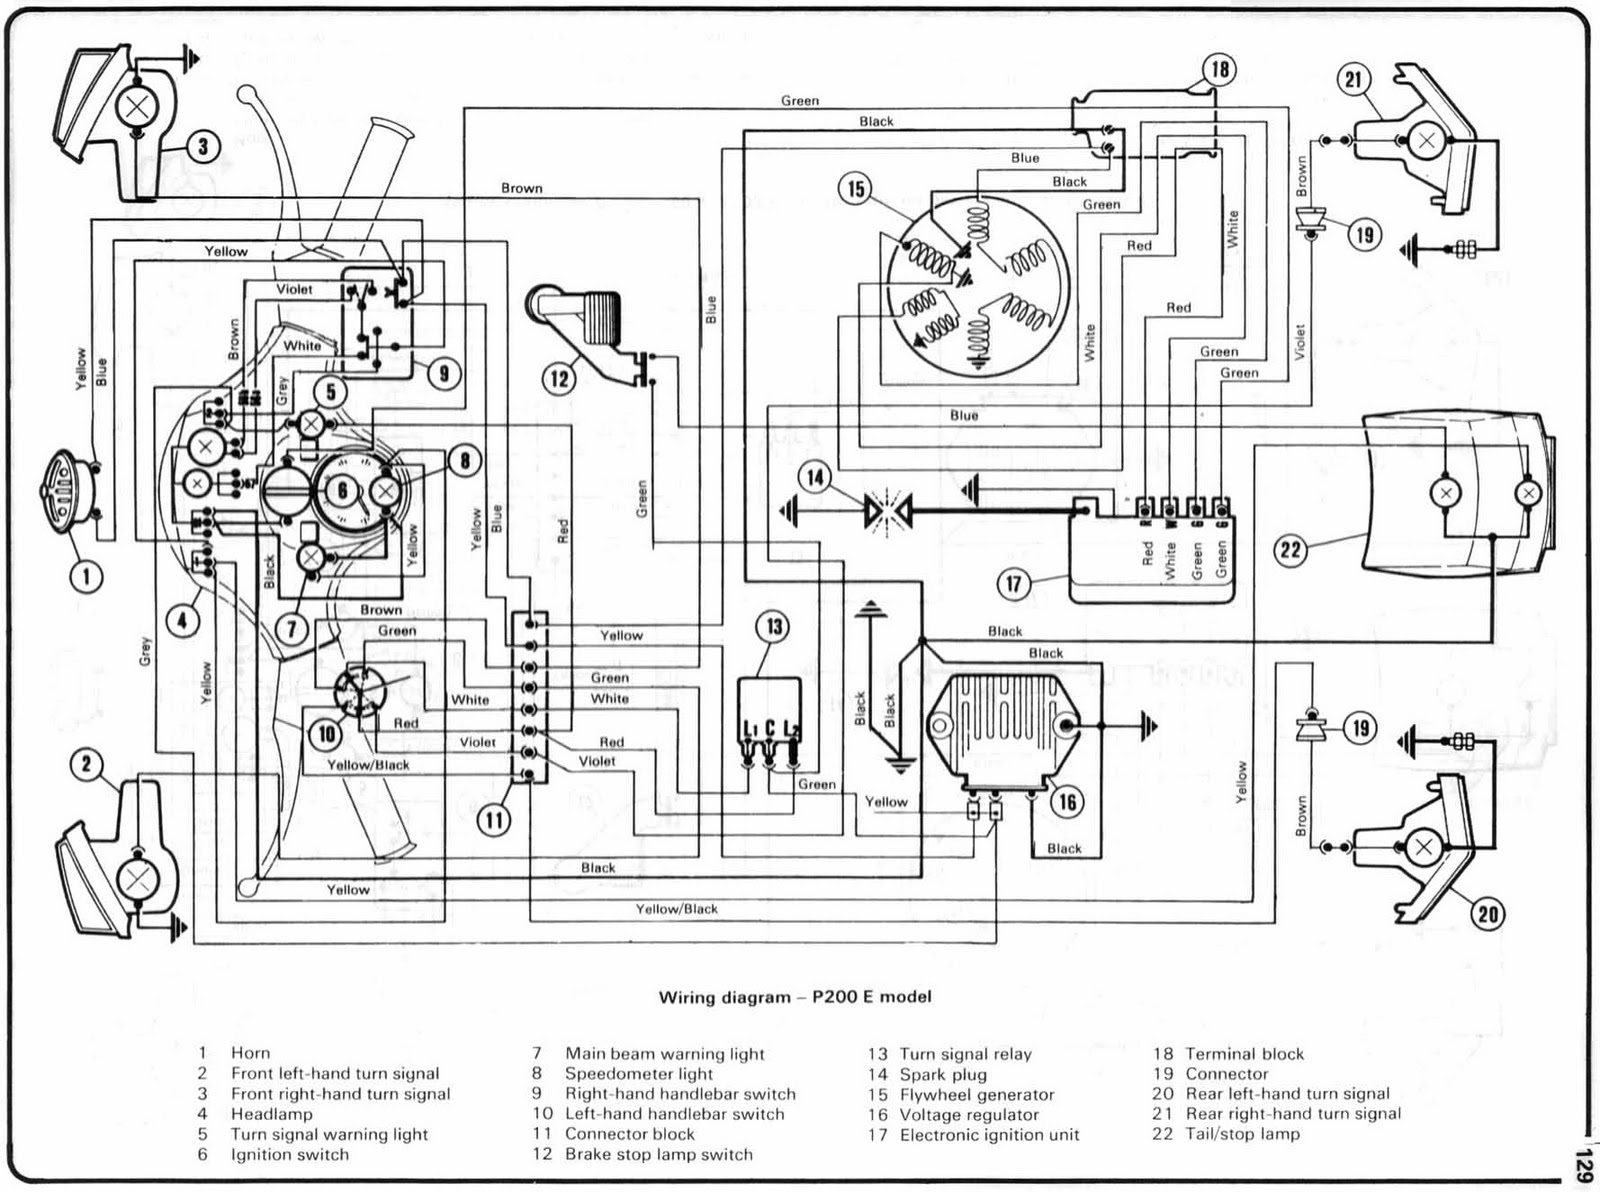 wiring diagrams 911 vespa p200 e model wiring diagram simple wiring schematics hvac wiring schematics [ 1600 x 1192 Pixel ]